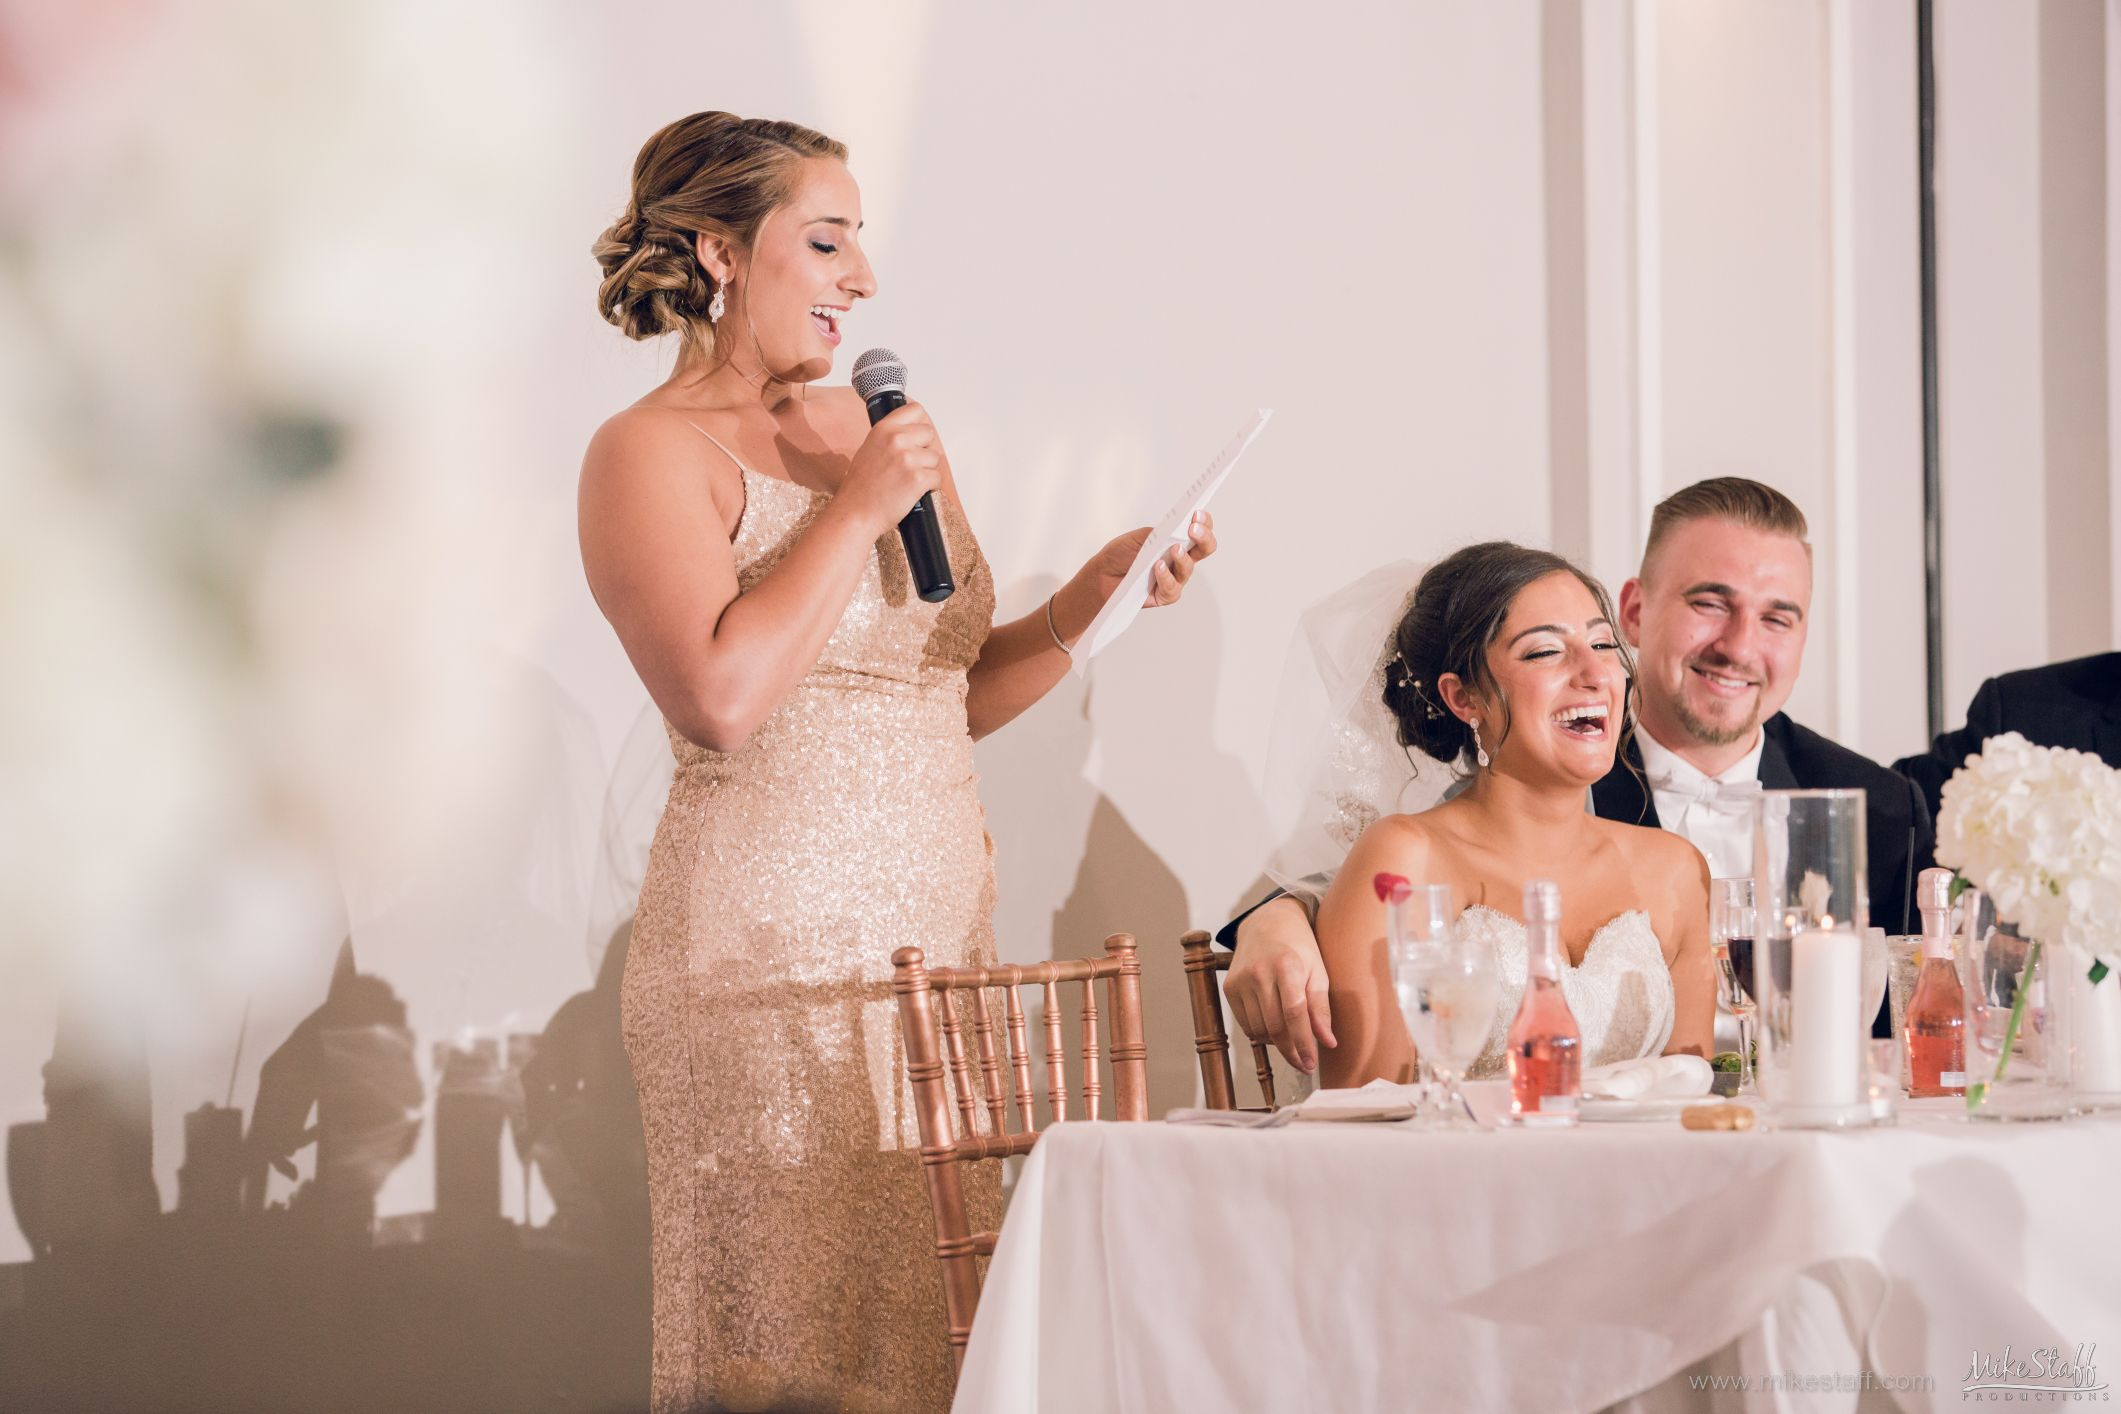 Have you read how to hire a GREAT DJ? Michigan wedding